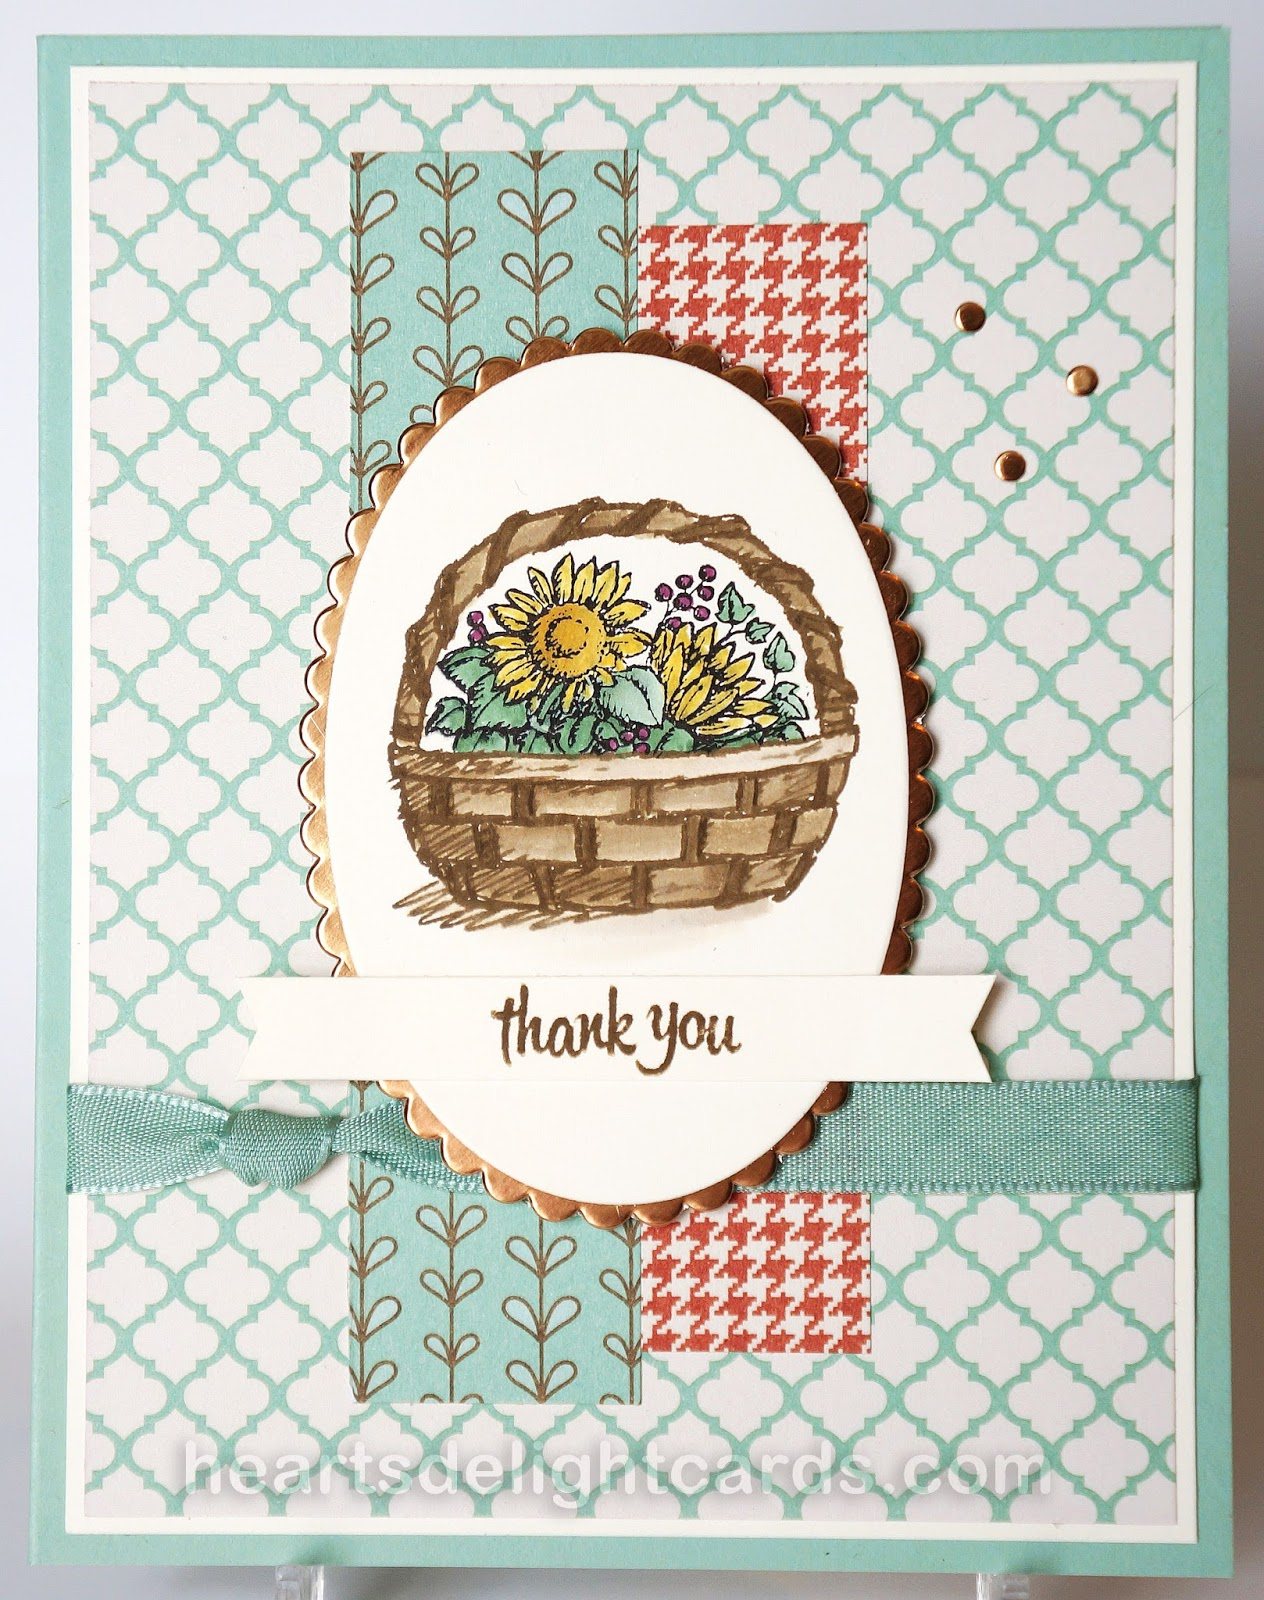 Heart s delight cards a basket full of thanks